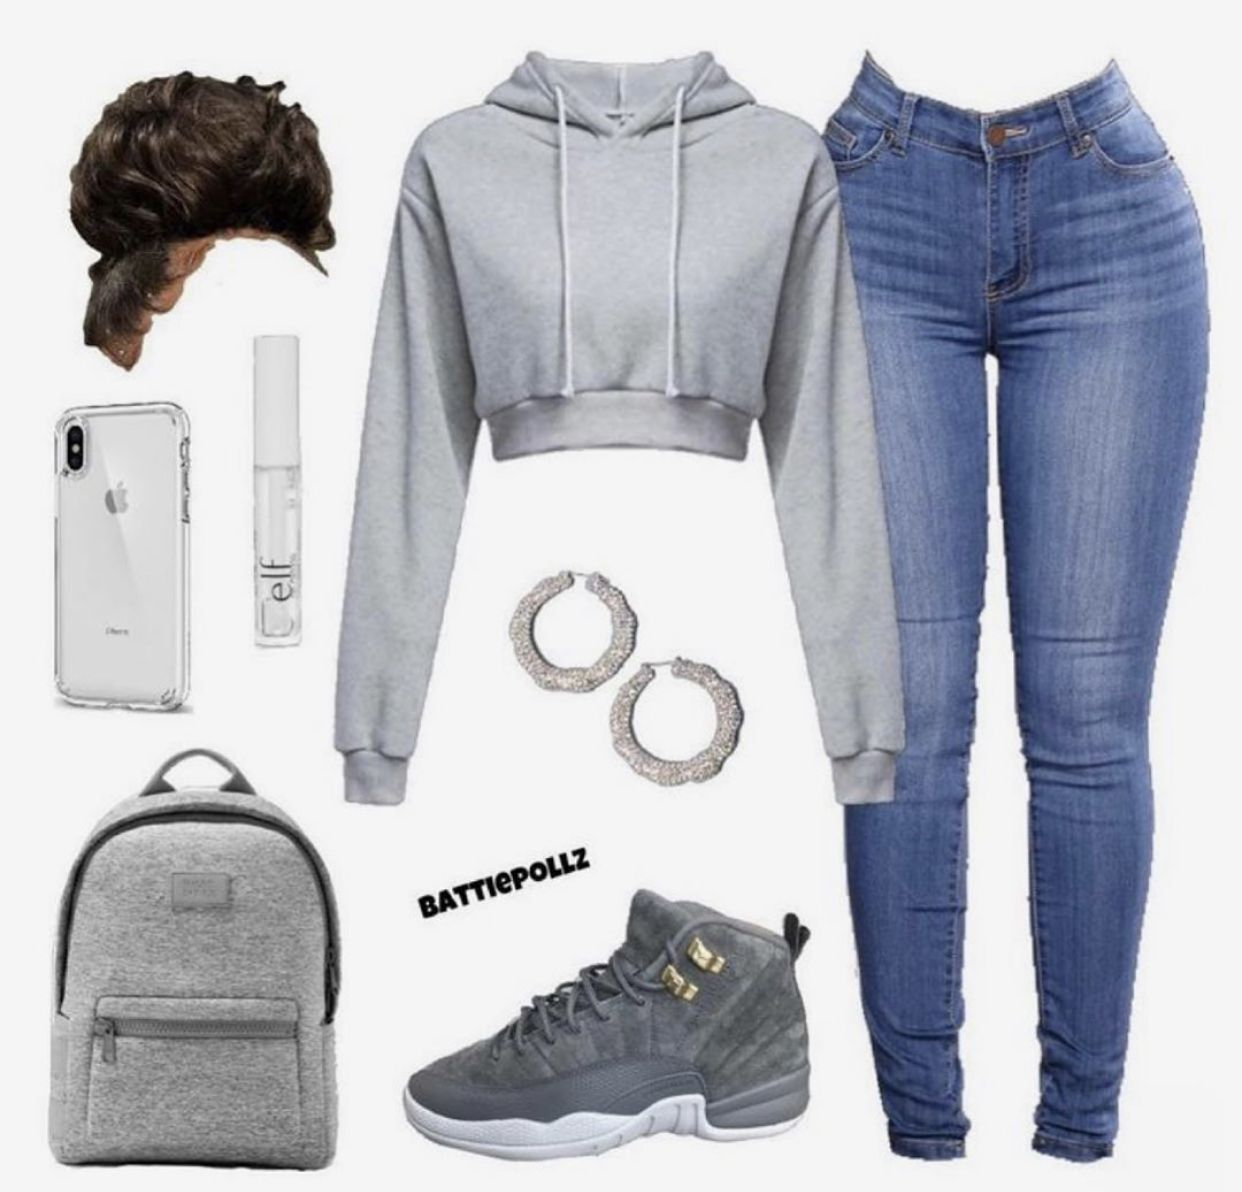 Pin By Gianna Manna On Polyvore Cute Swag Outfits Teenage Fashion Outfits Baddie Outfits Casual